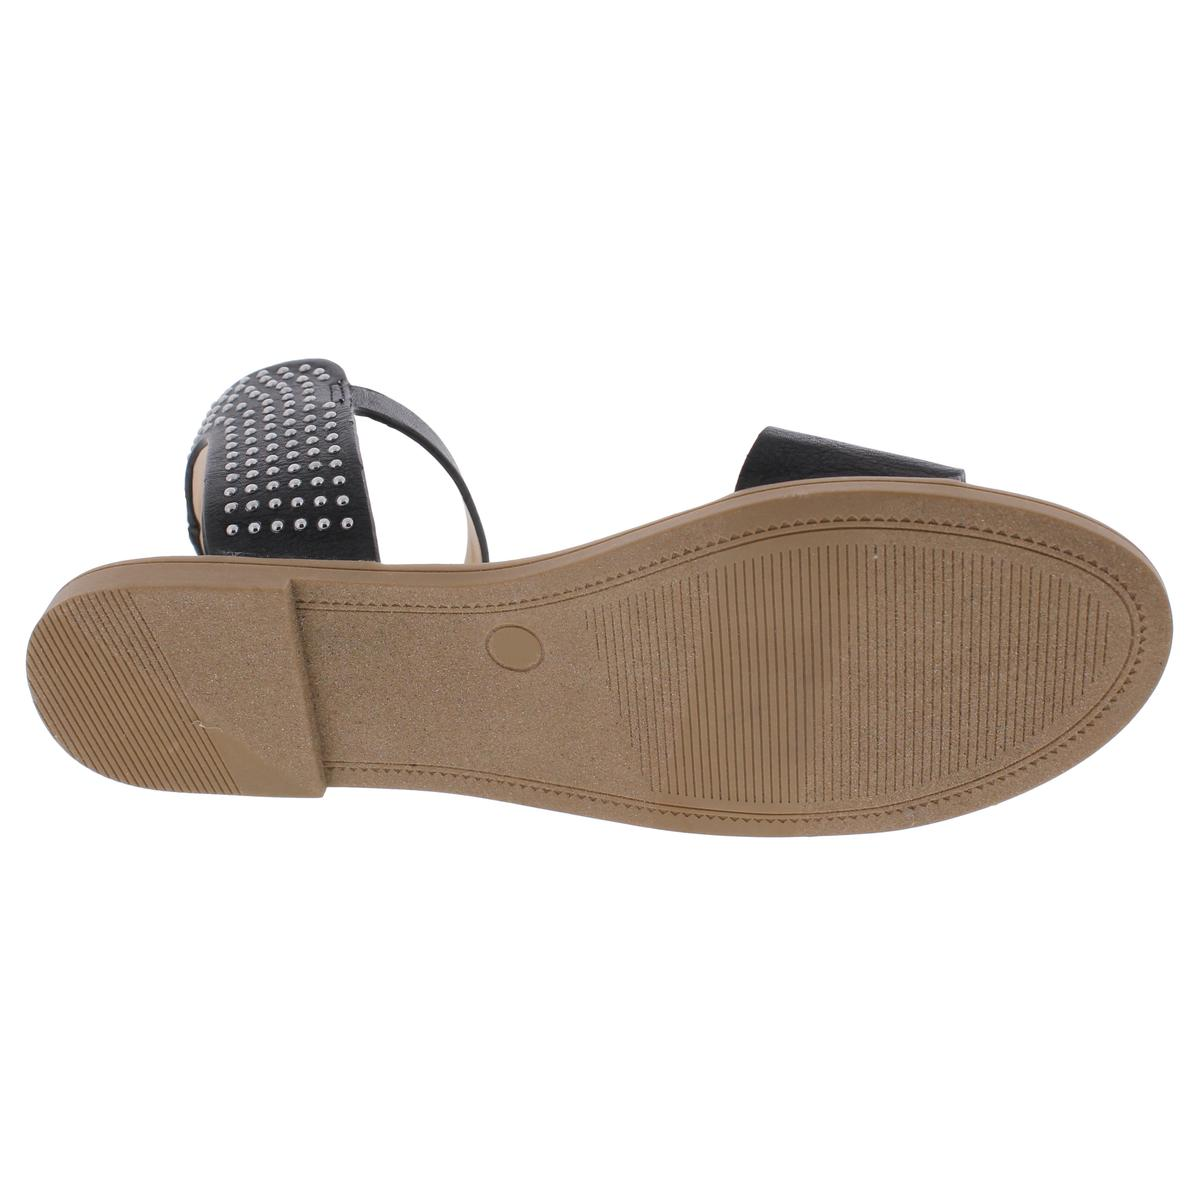 Madden-Girl-by-Steve-Madden-Womens-Drama-Ankle-Flat-Sandals-Shoes-BHFO-9428 thumbnail 8